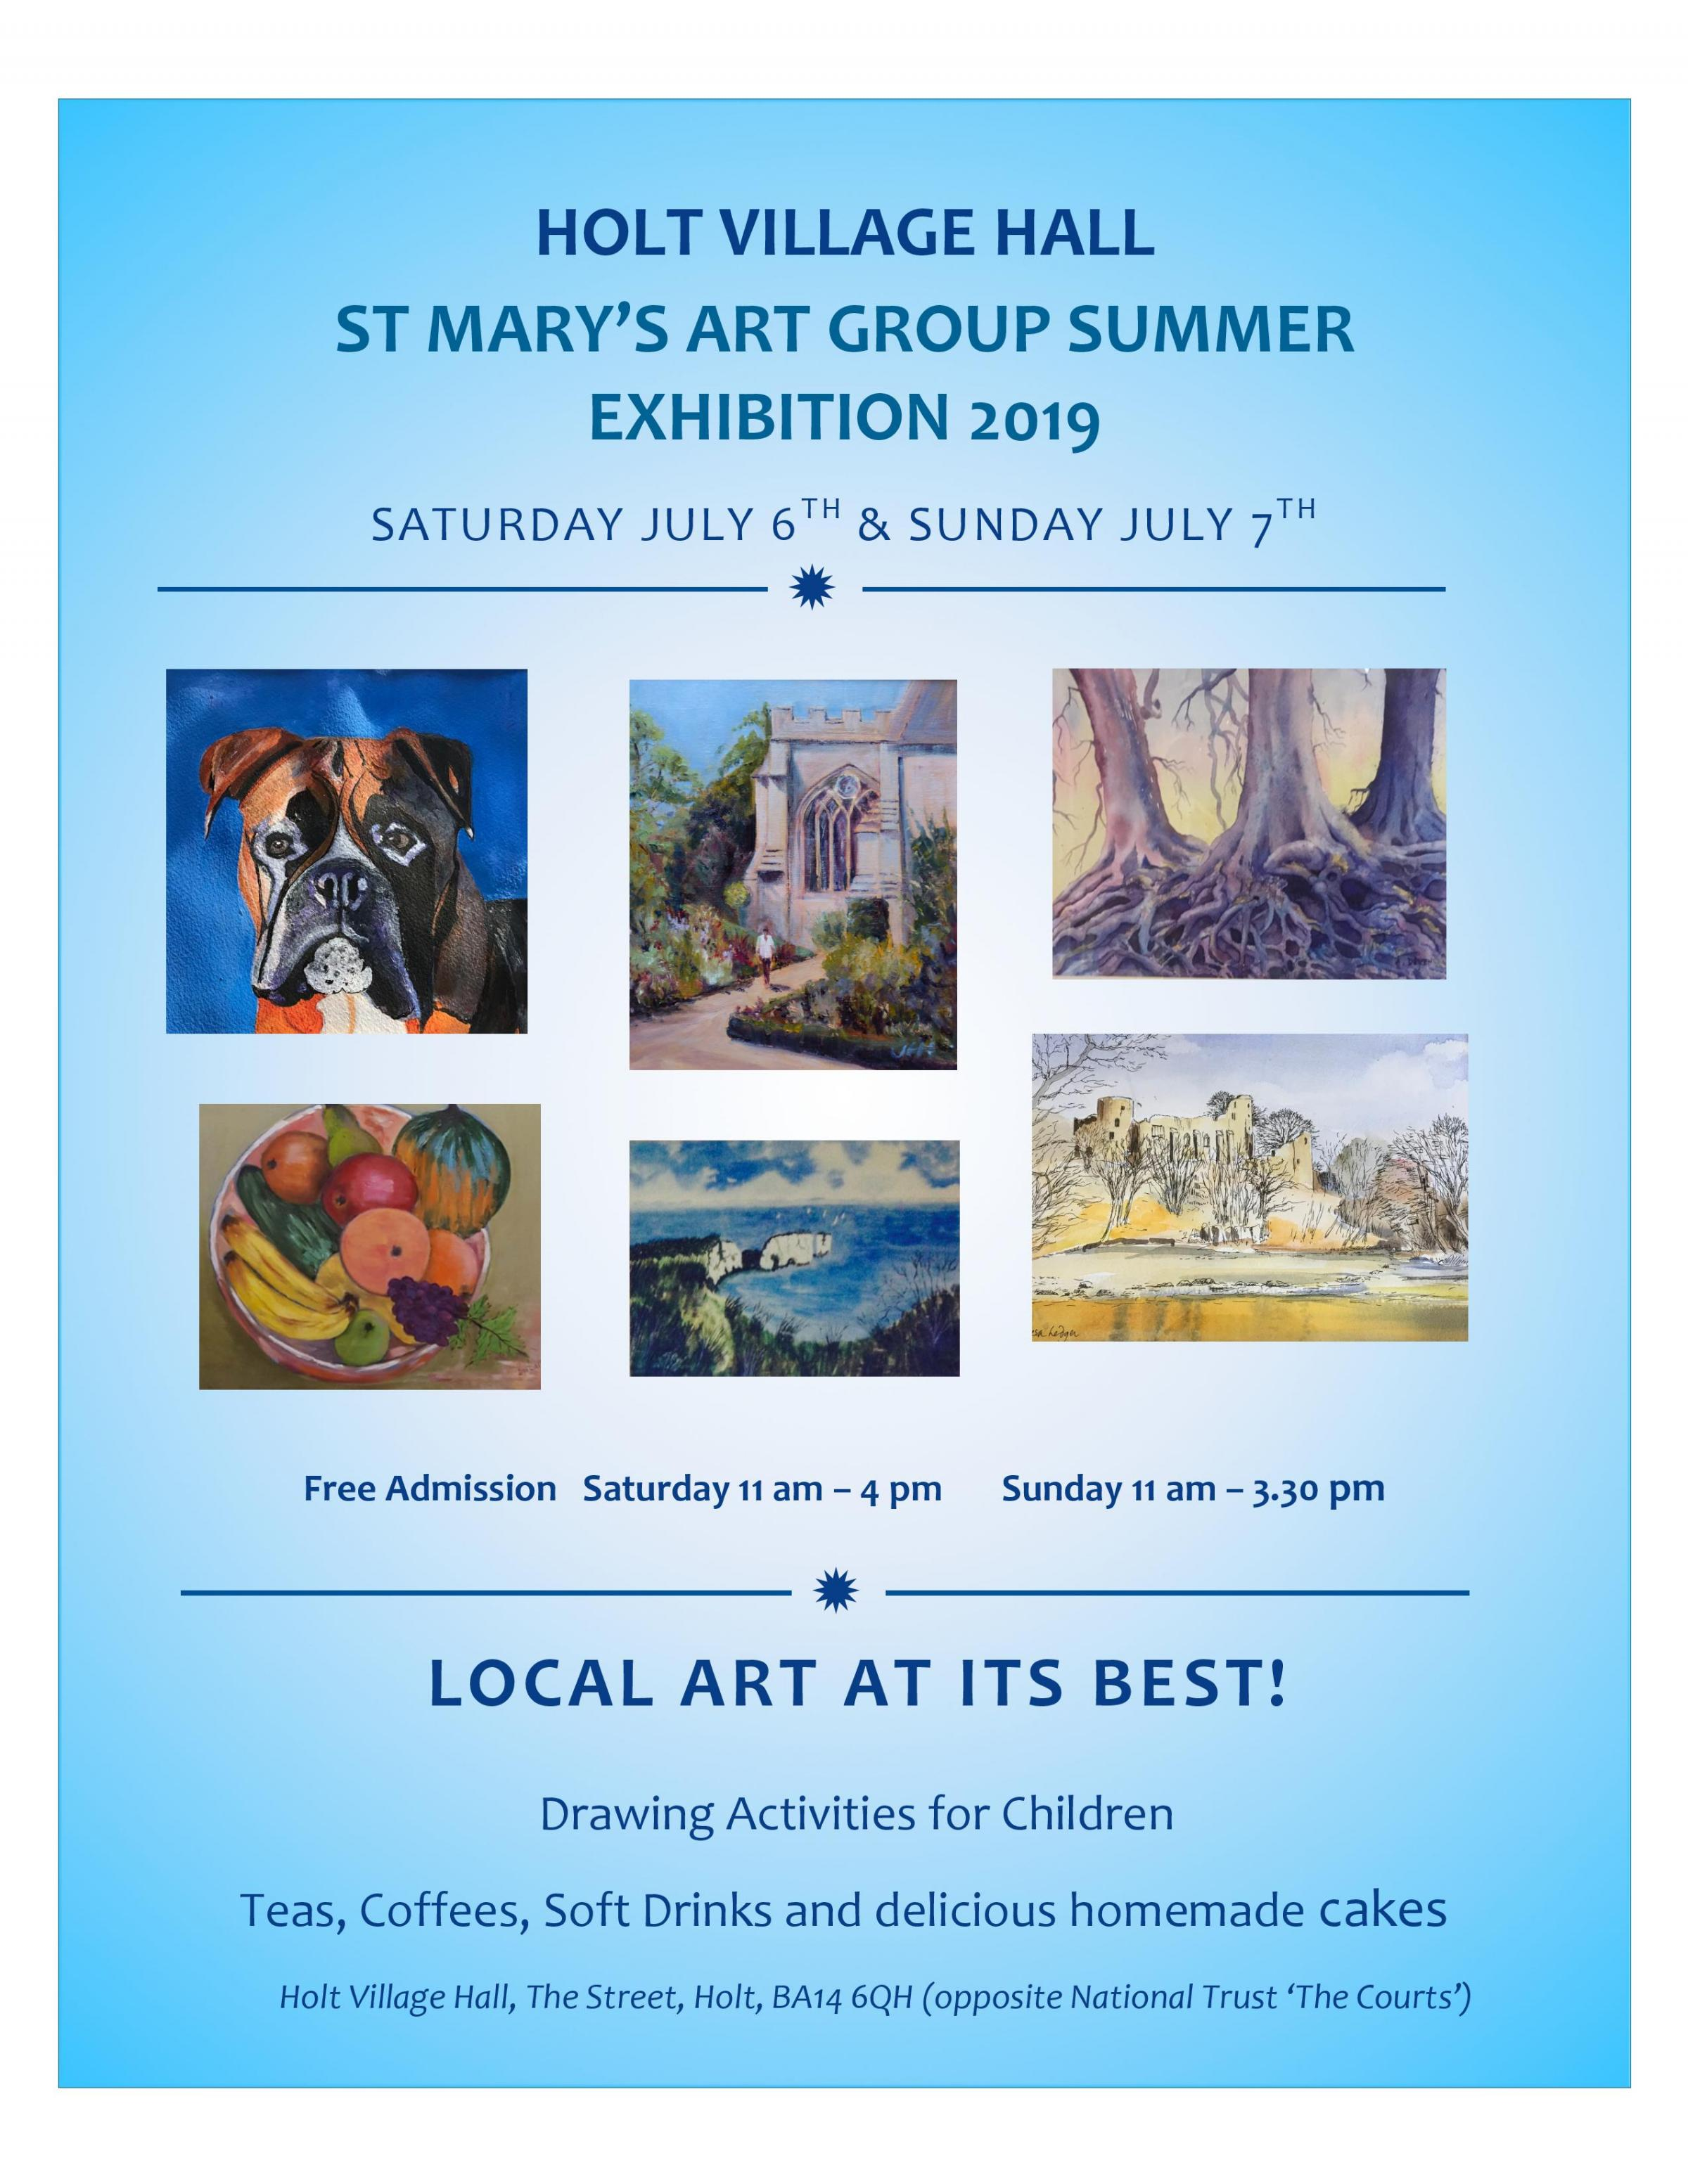 St Mary's Art Group Summer Show